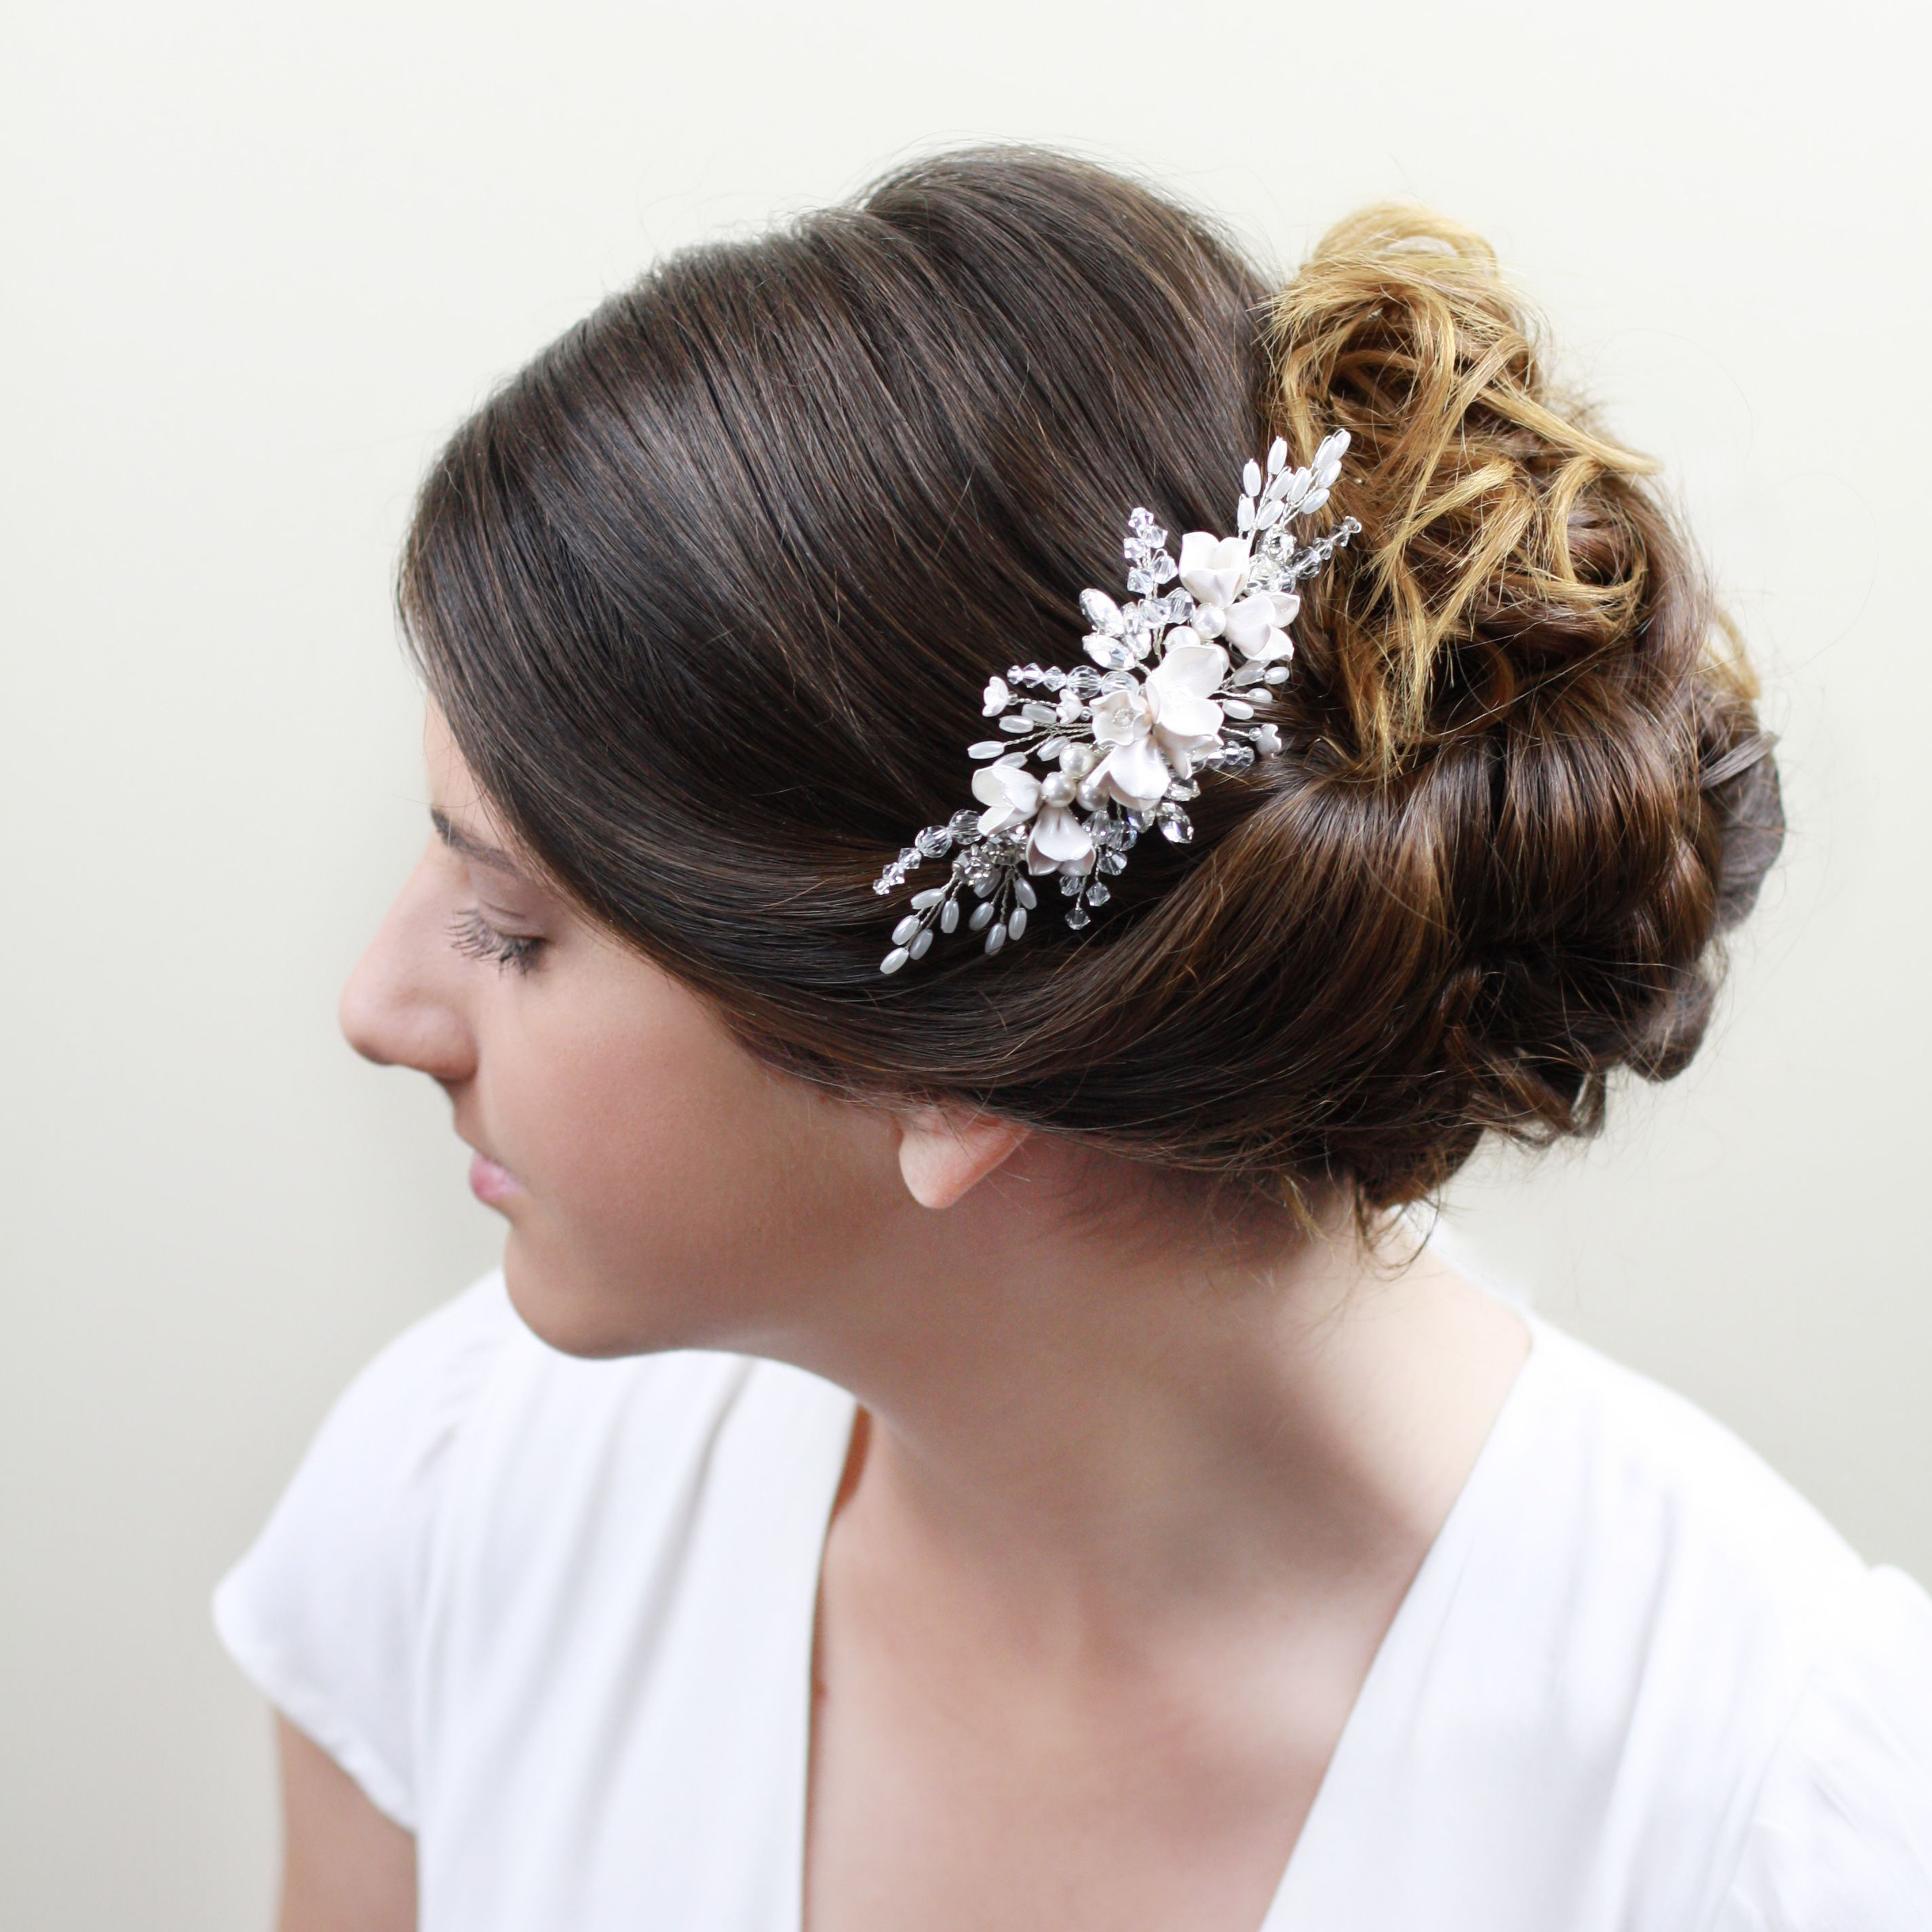 Florence Bridal Headpiece with delicate handmade flowers and